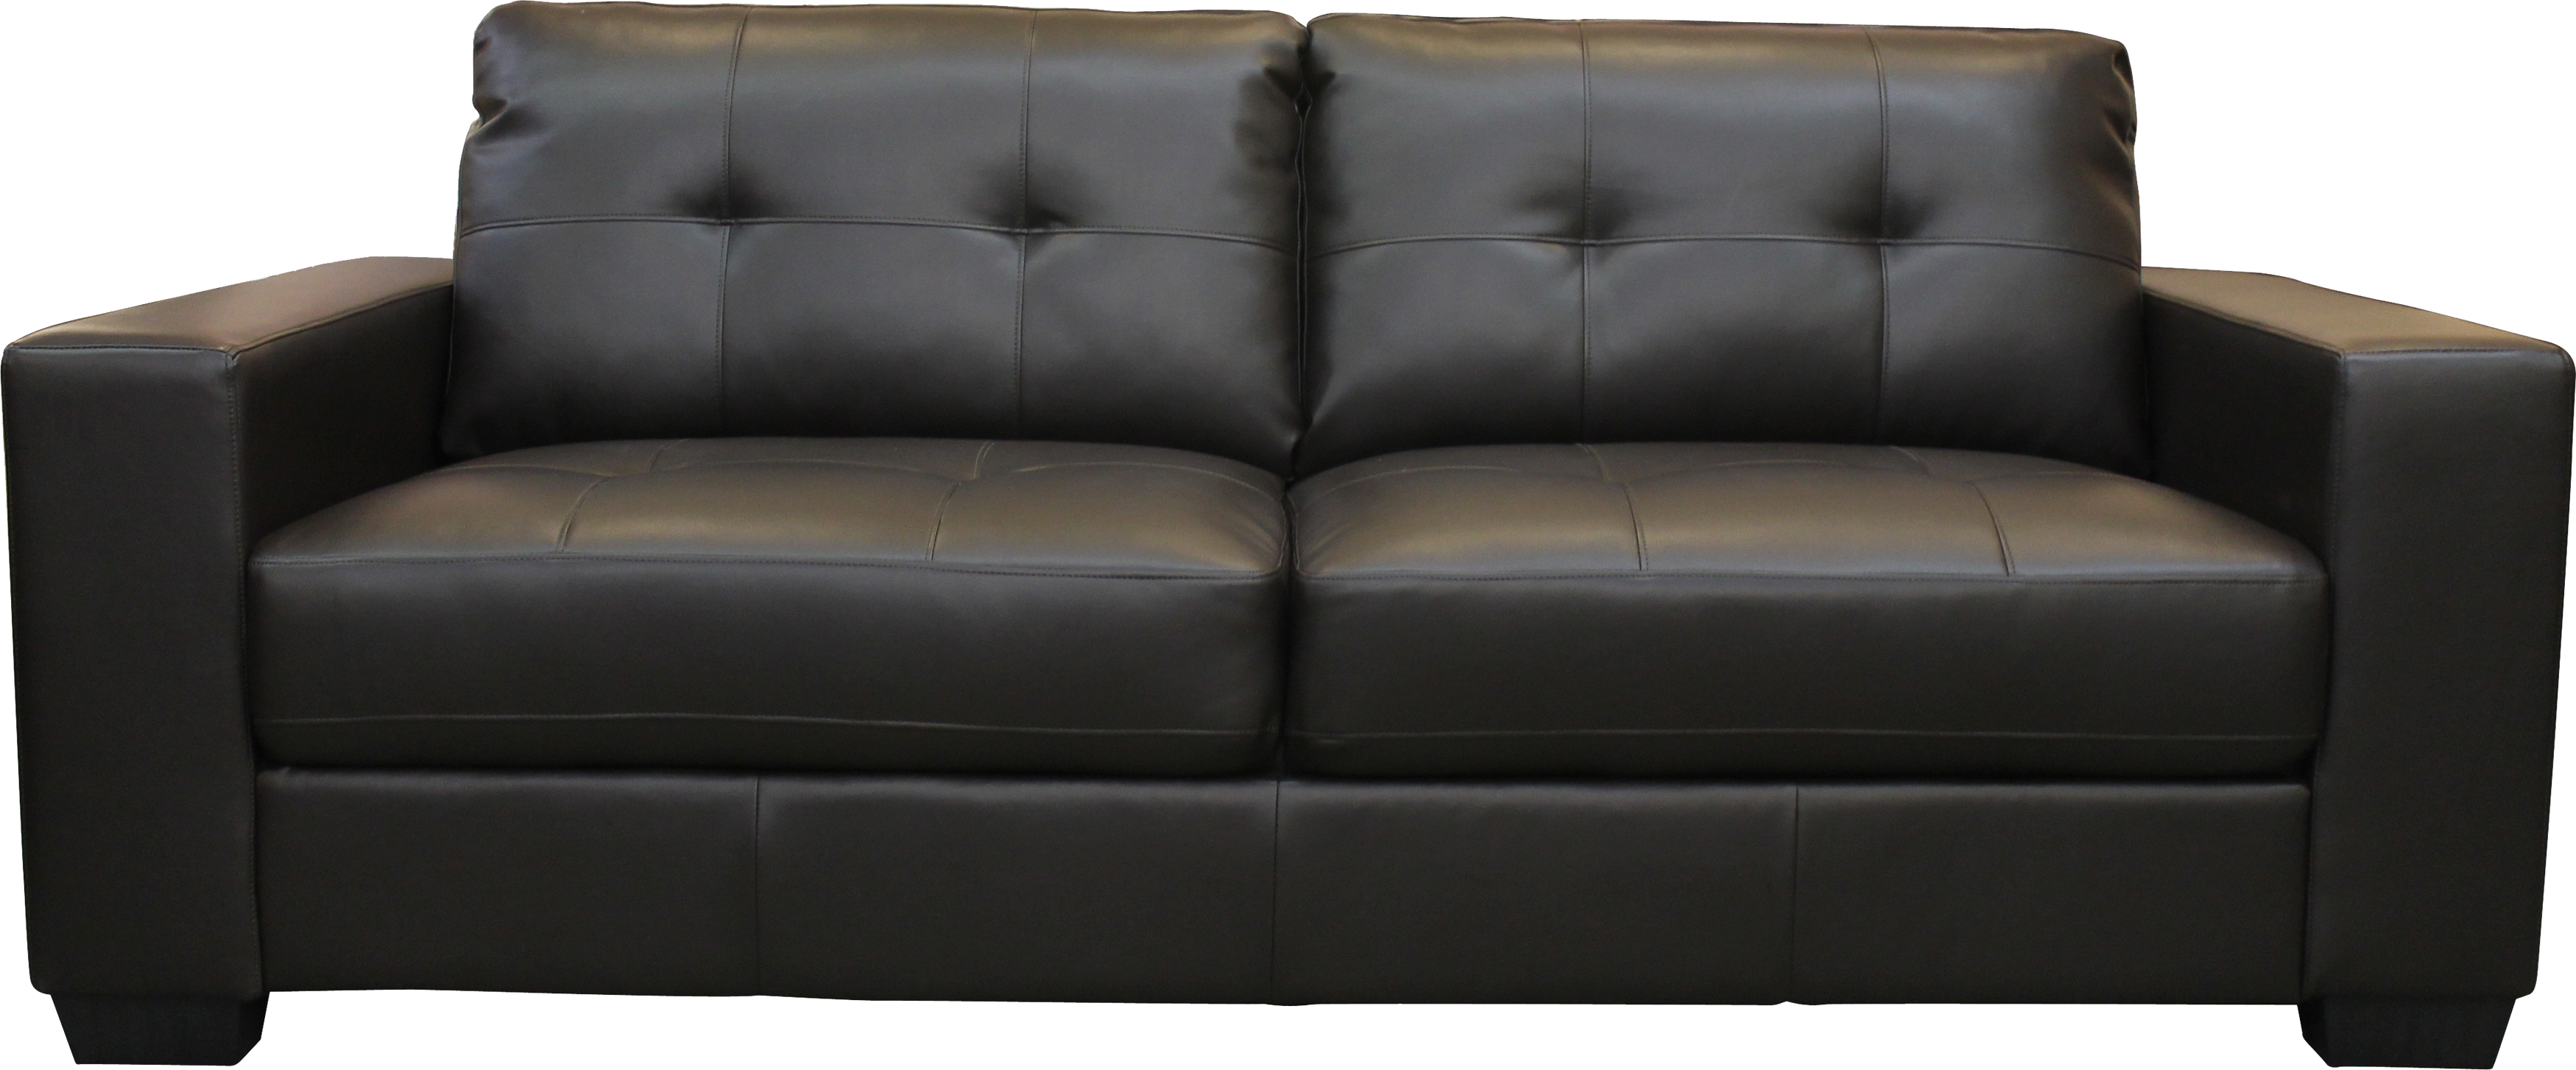 old couch png